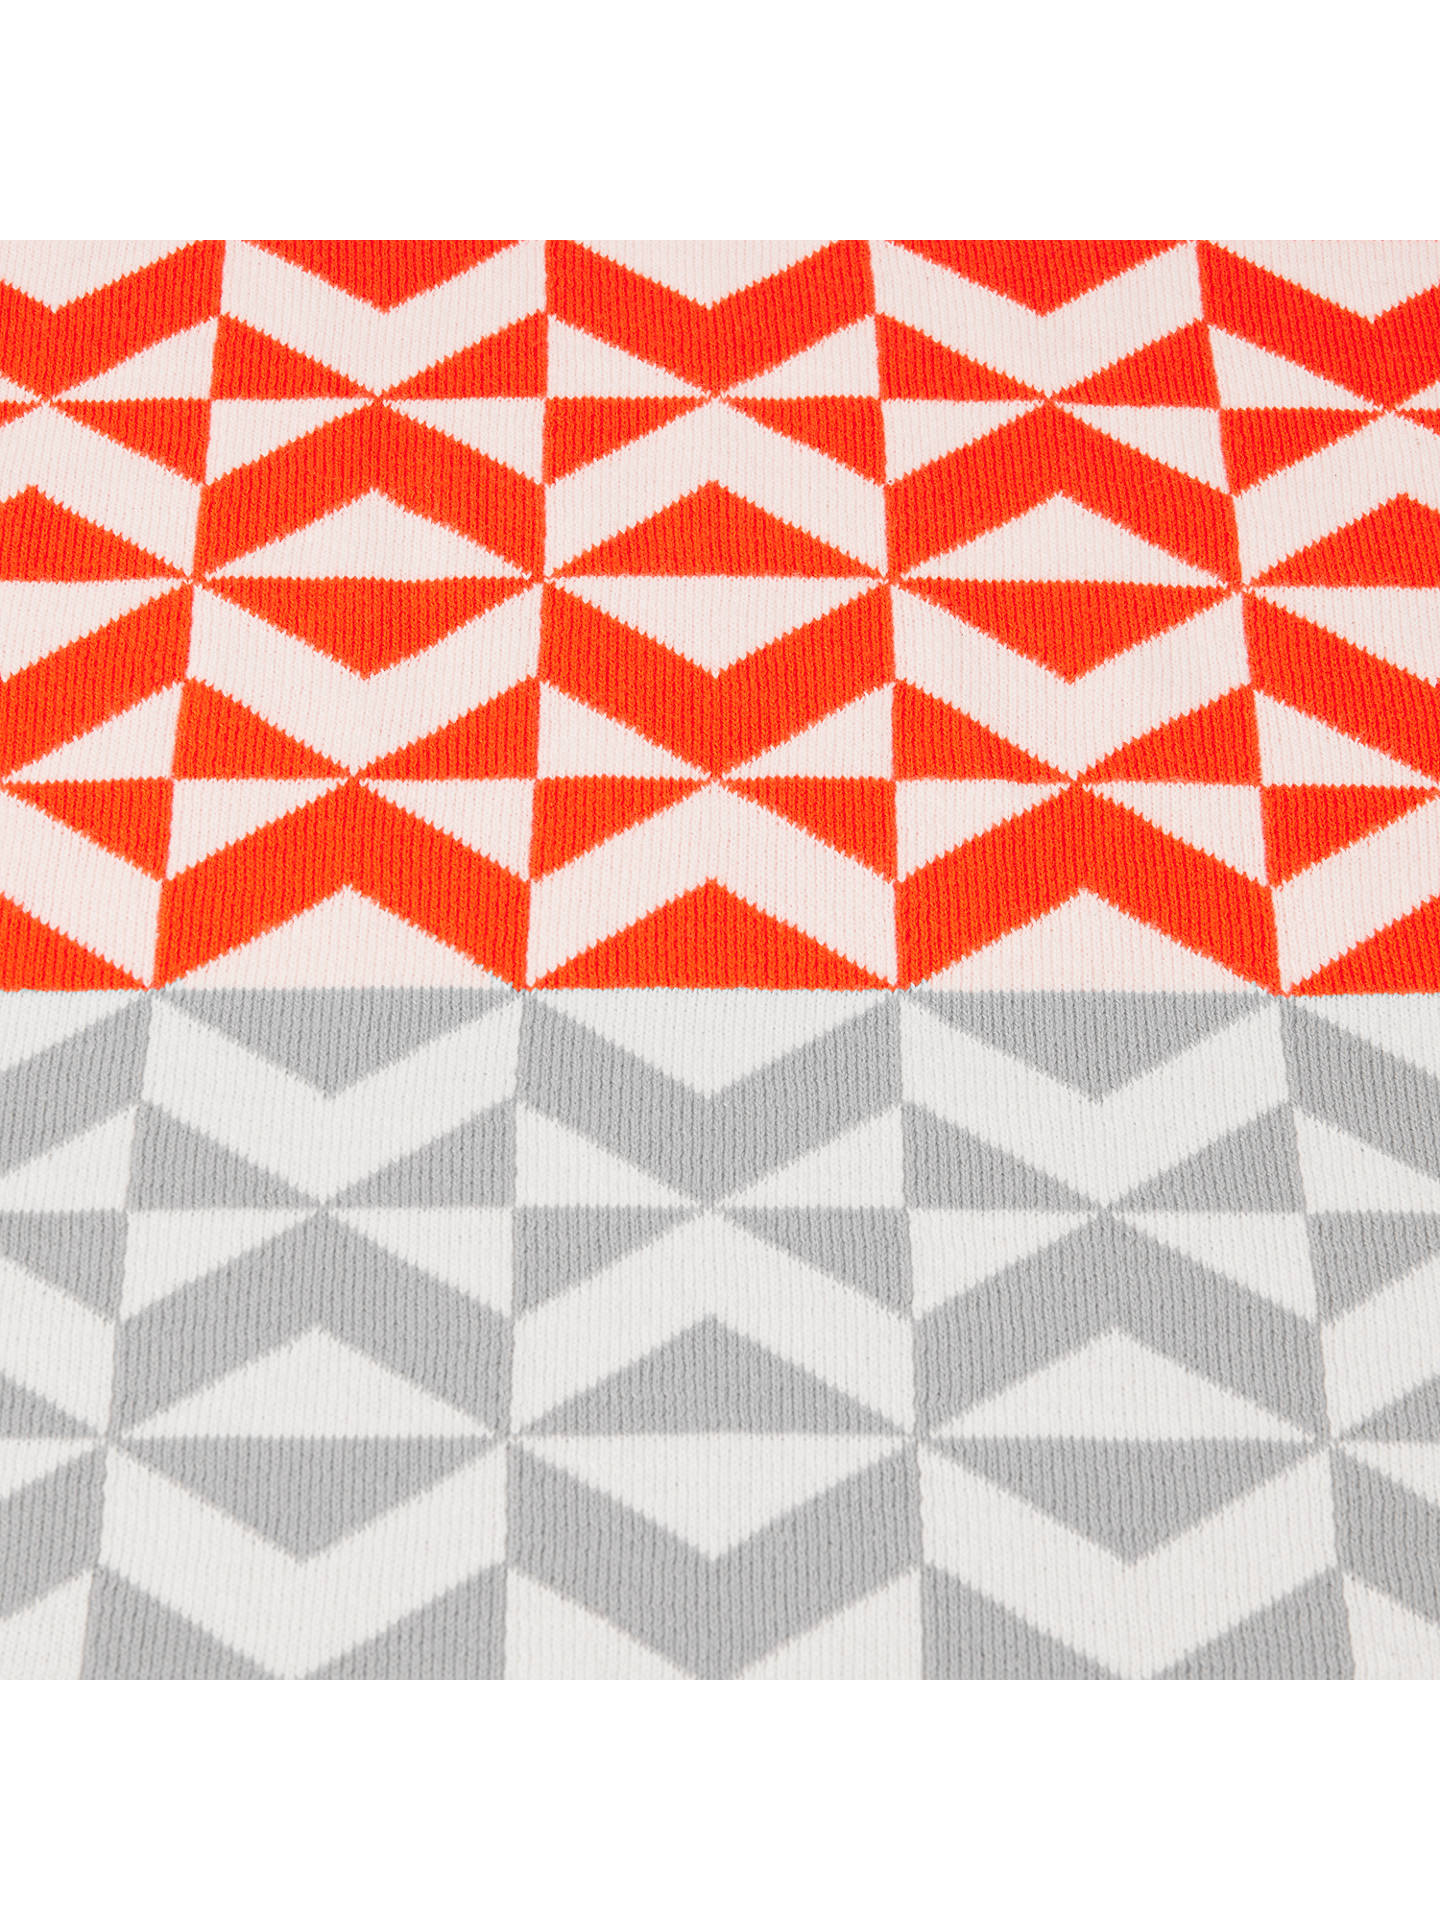 BuyHouse by John Lewis Chevron Knitted Throw Online at johnlewis.com